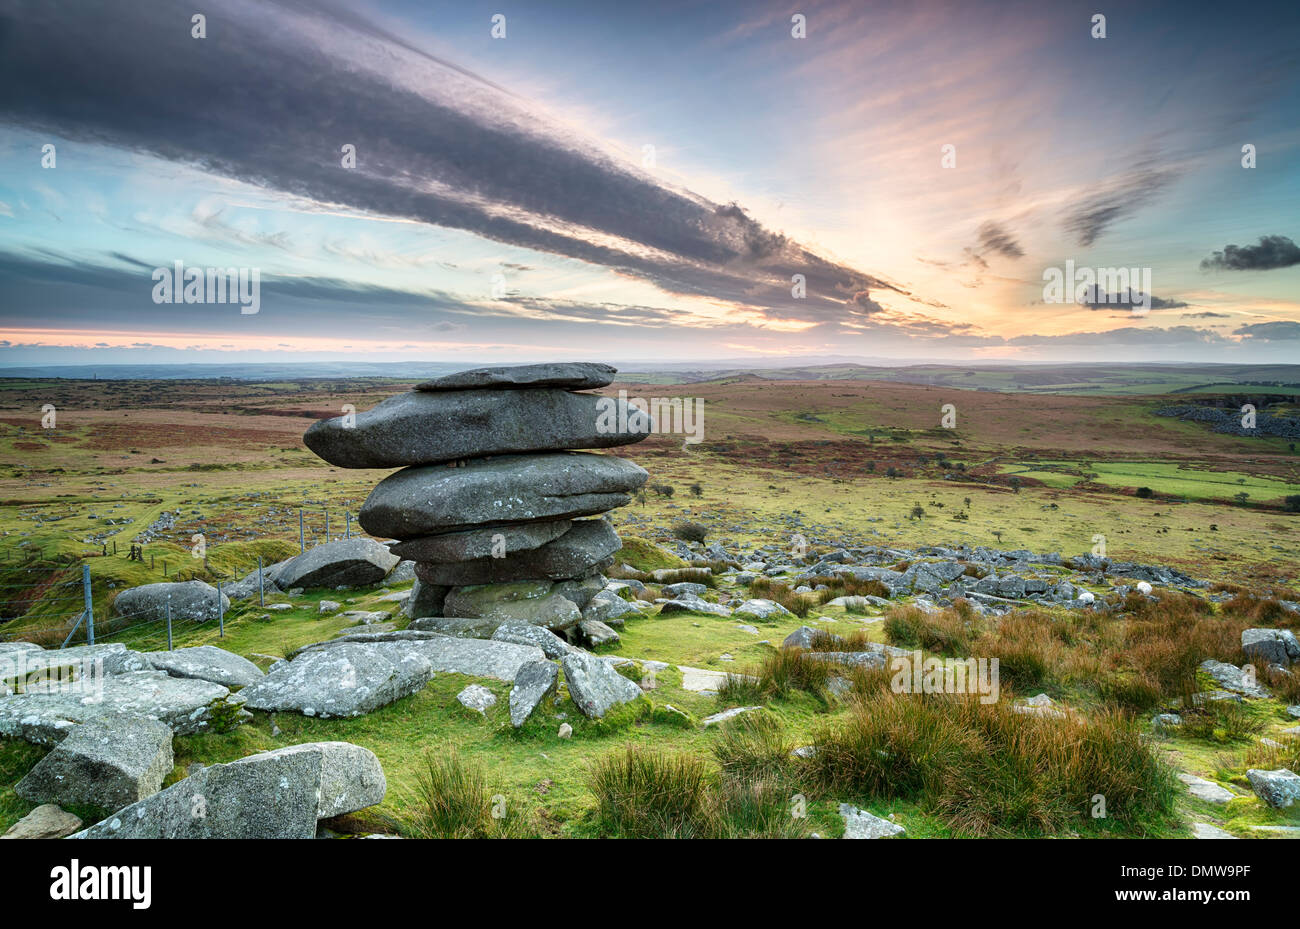 Sunset at the Cheesewring on Bodmin Moor in Cornwall, a weathered natural rock formation made up of precariously - Stock Image